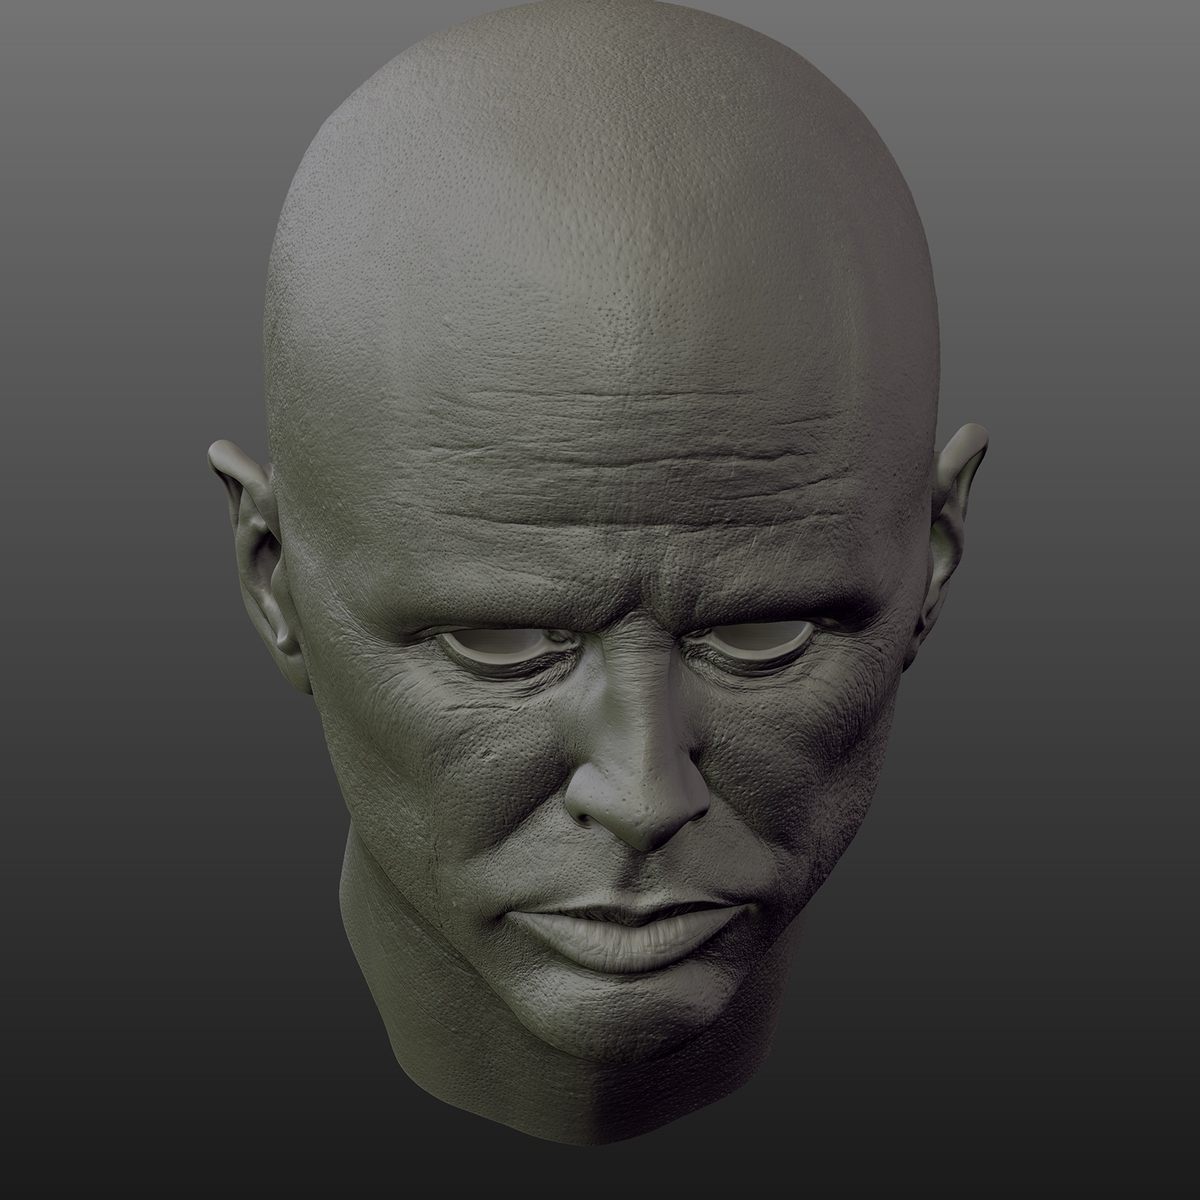 ZBrush Document04